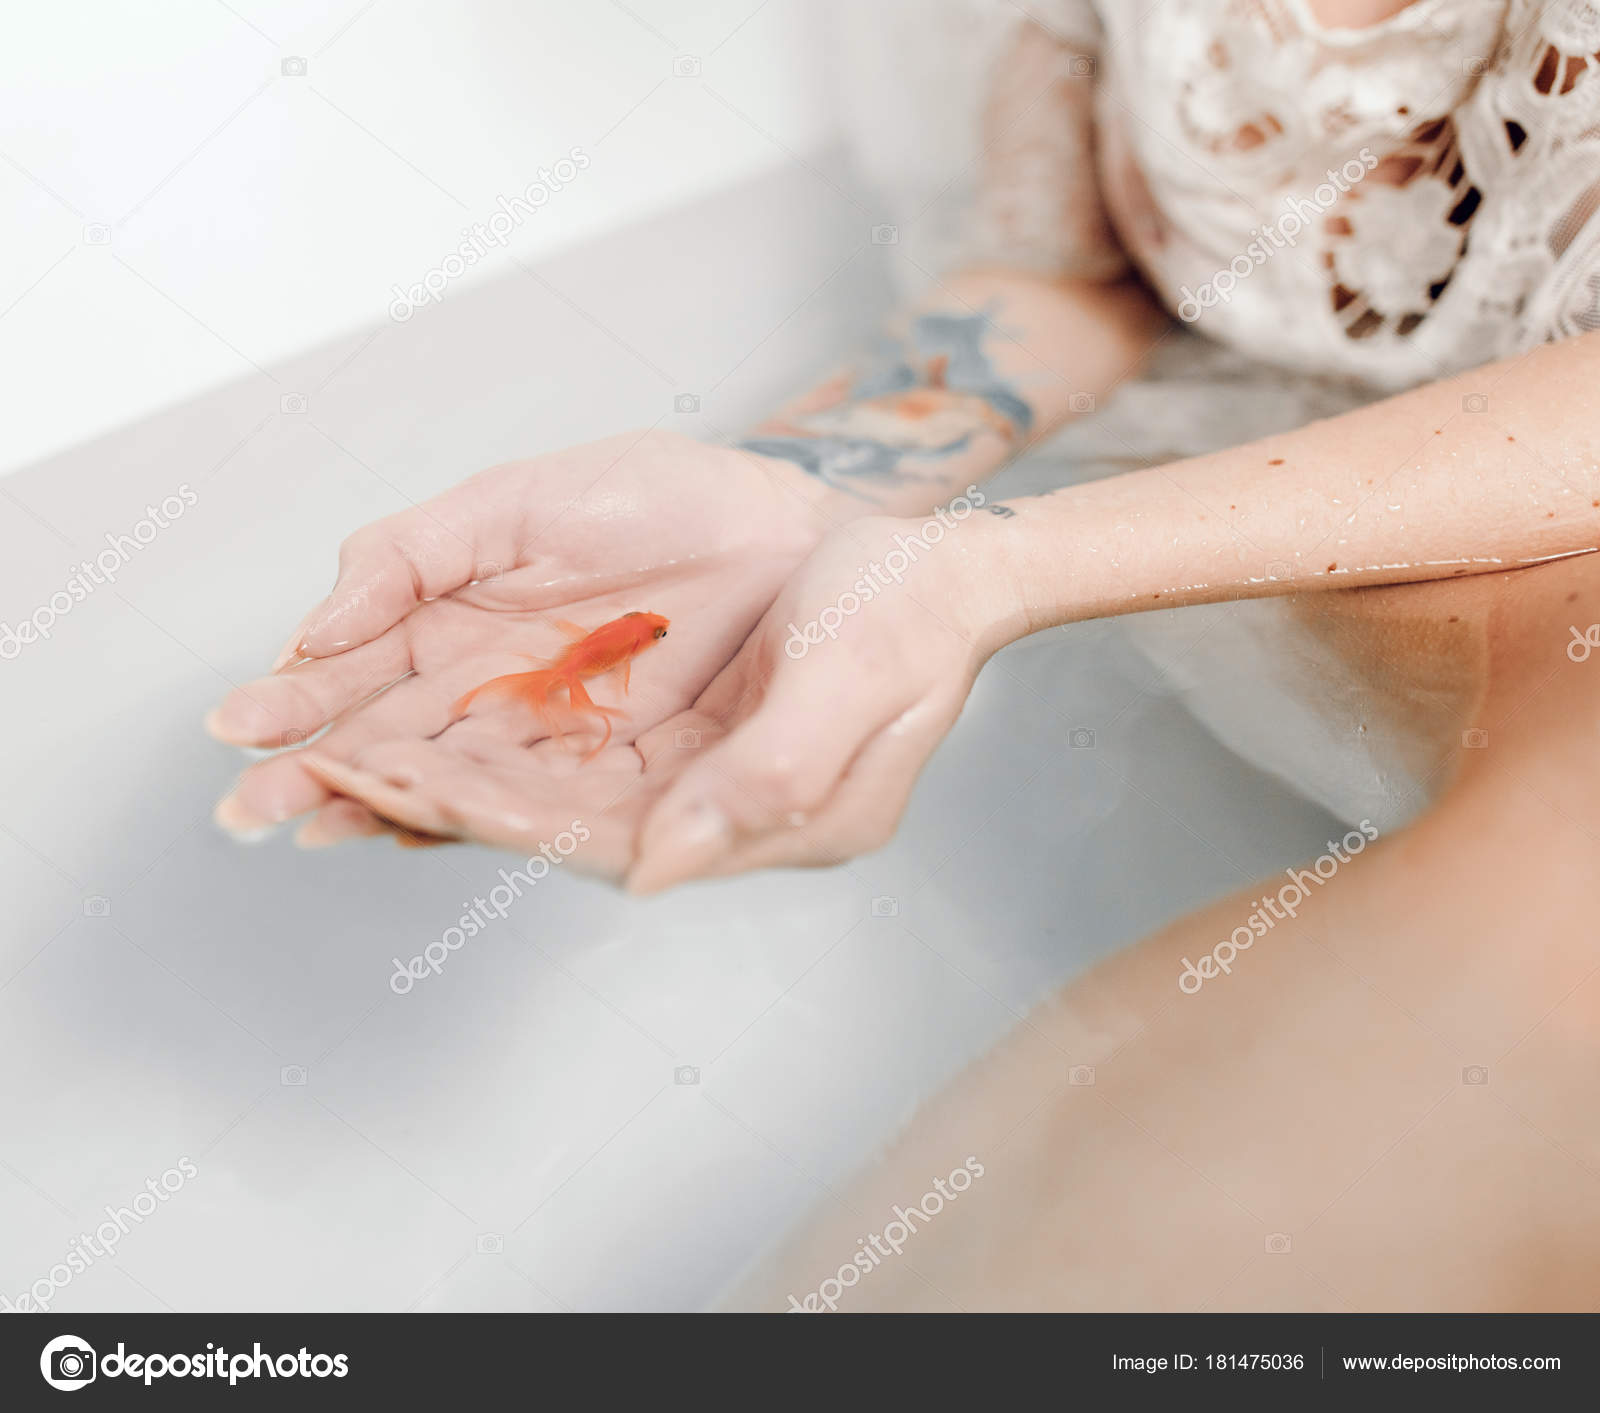 Woman\'s hands in bathtub with water hold goldfish in her palms ...